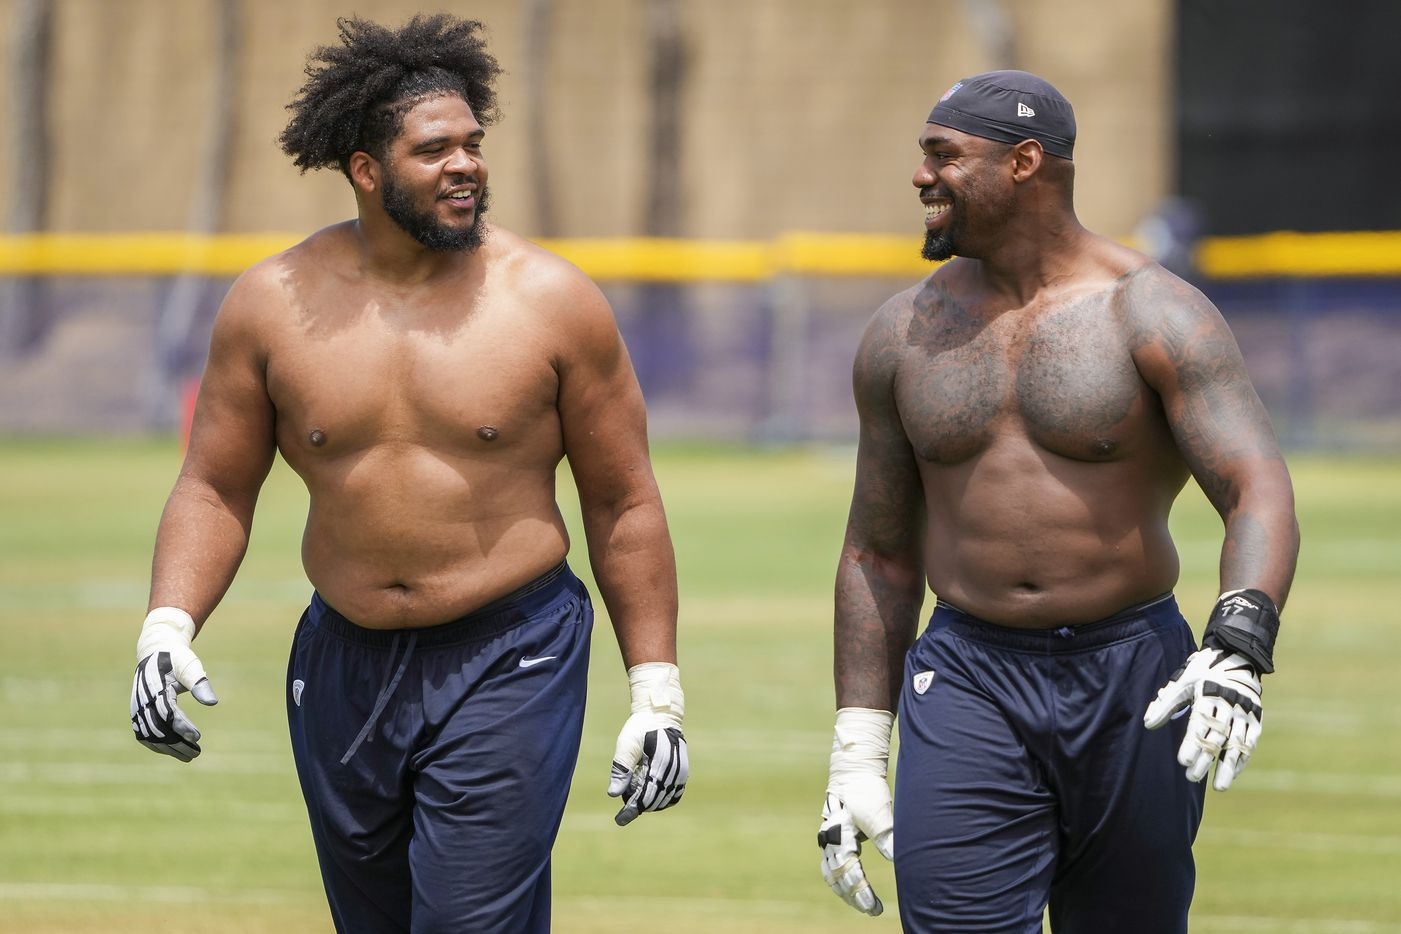 Dallas Cowboys tackle La'el Collins (left) laughs with tackle Tyron Smith as they leave the field following a practice at training camp on Saturday, July 24, 2021, in Oxnard, Calif.